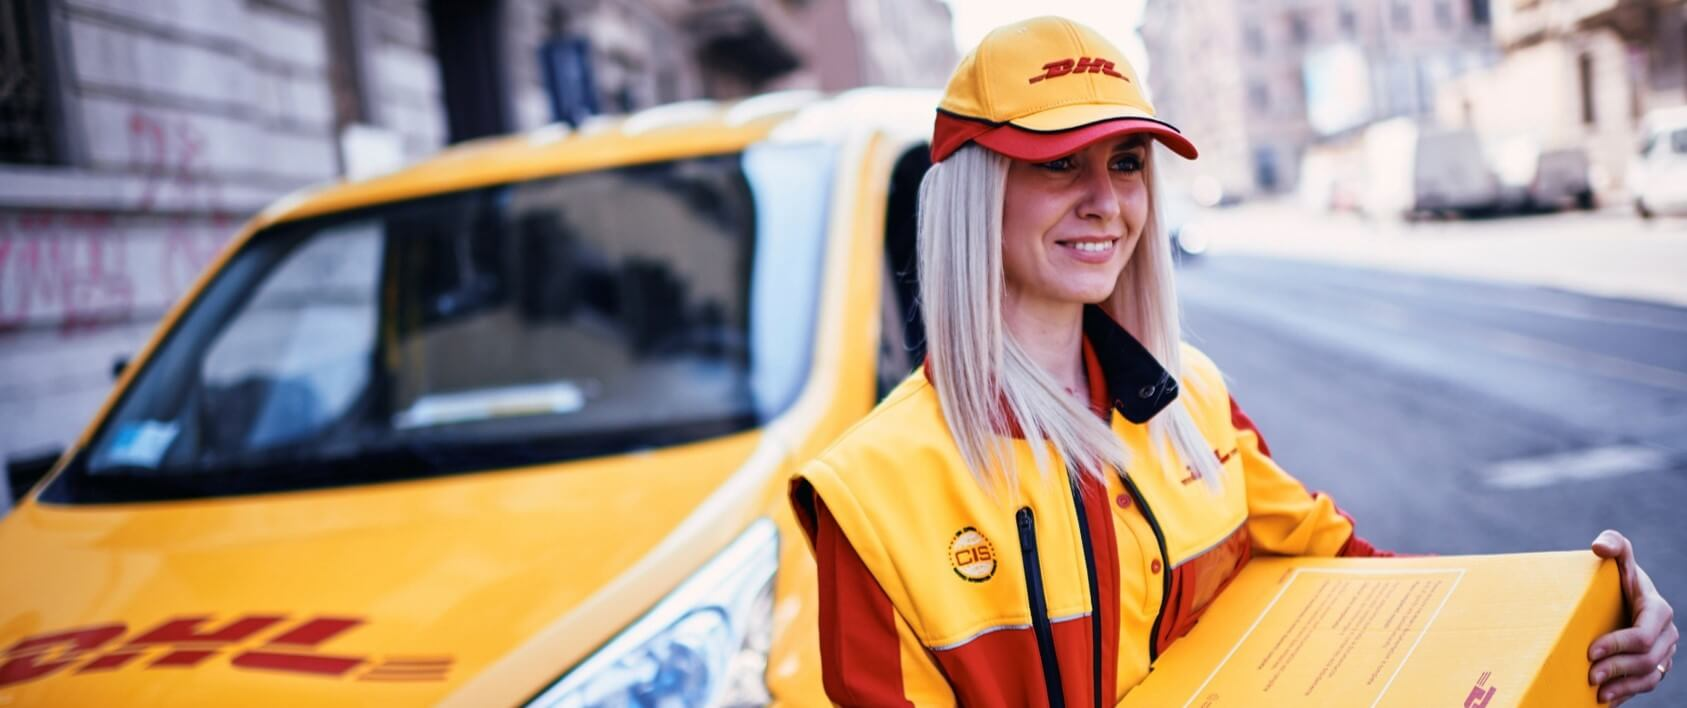 DHL offer excellent courier pickup and delivery service